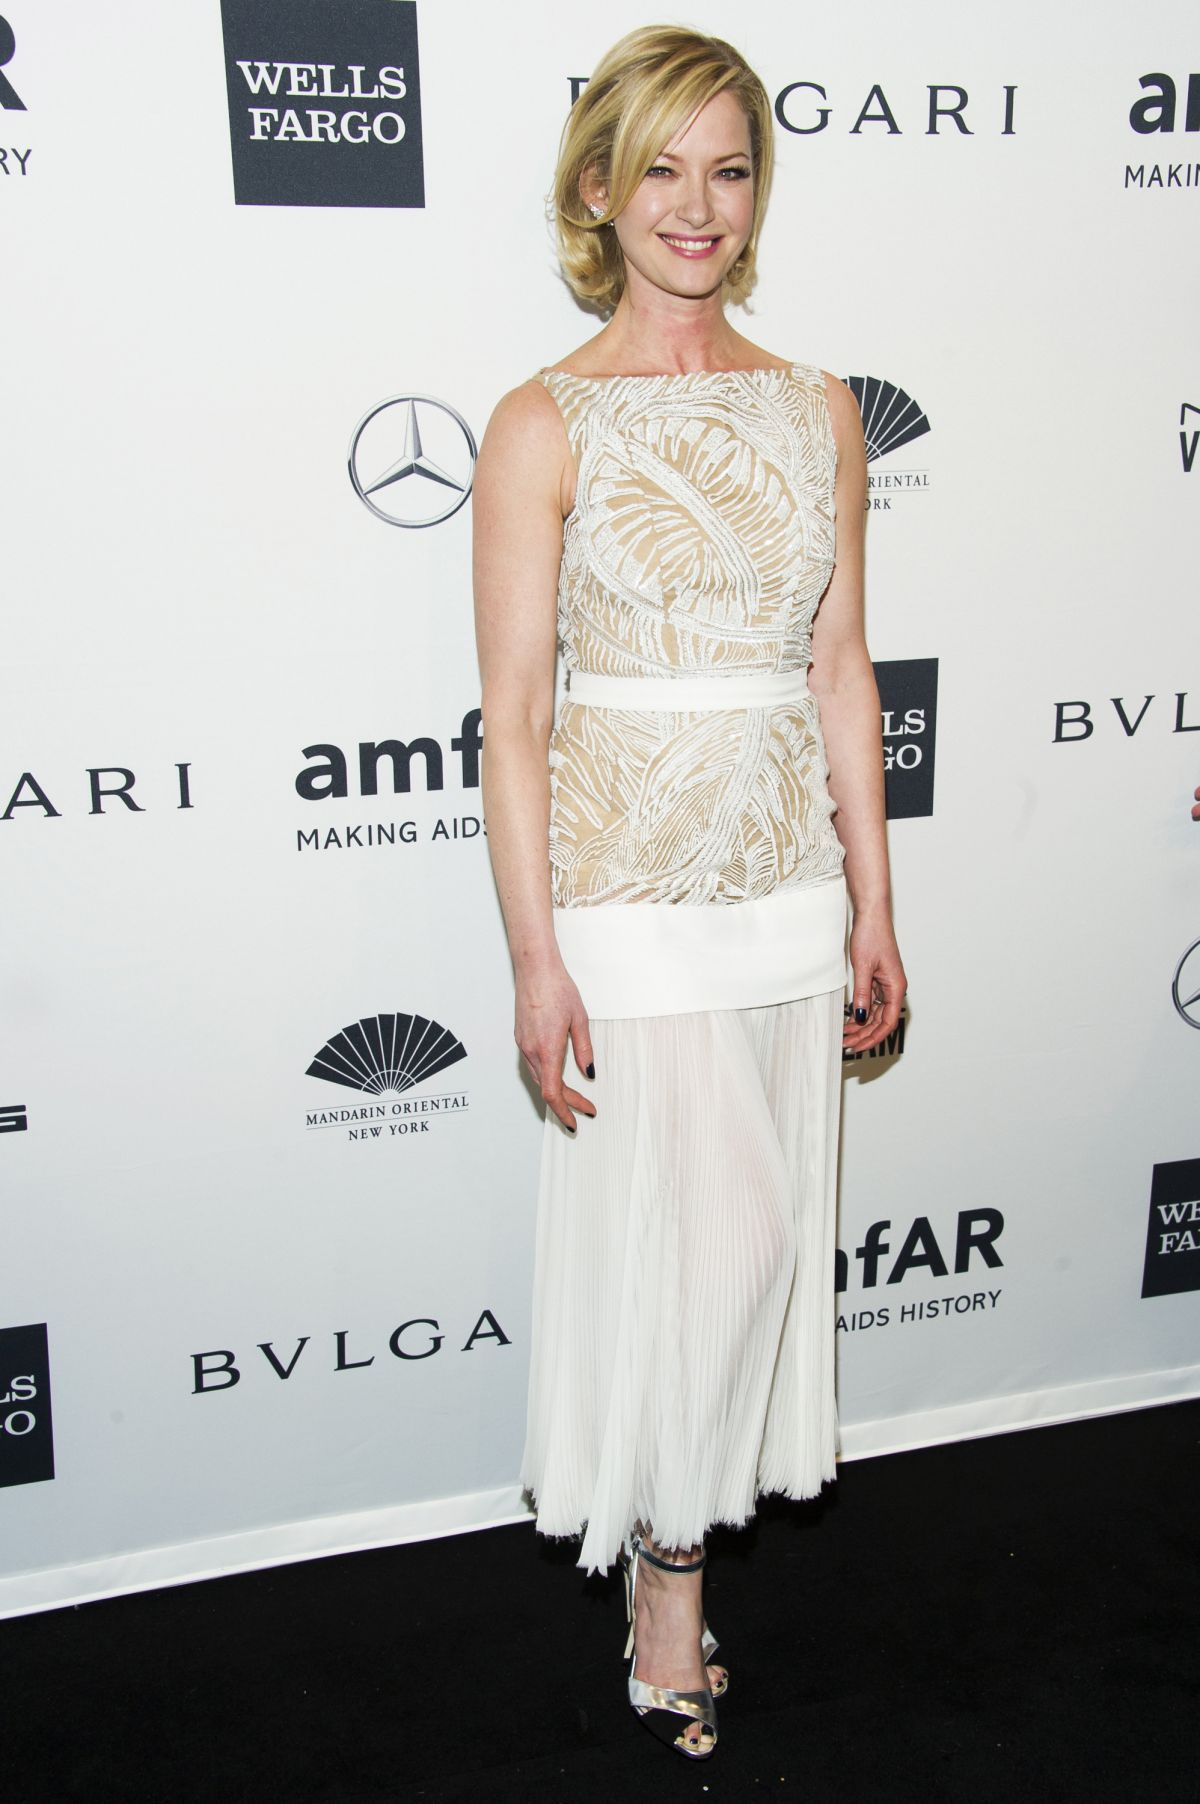 GRETCHEN MOL at 2014 AMFAR Gala in New York